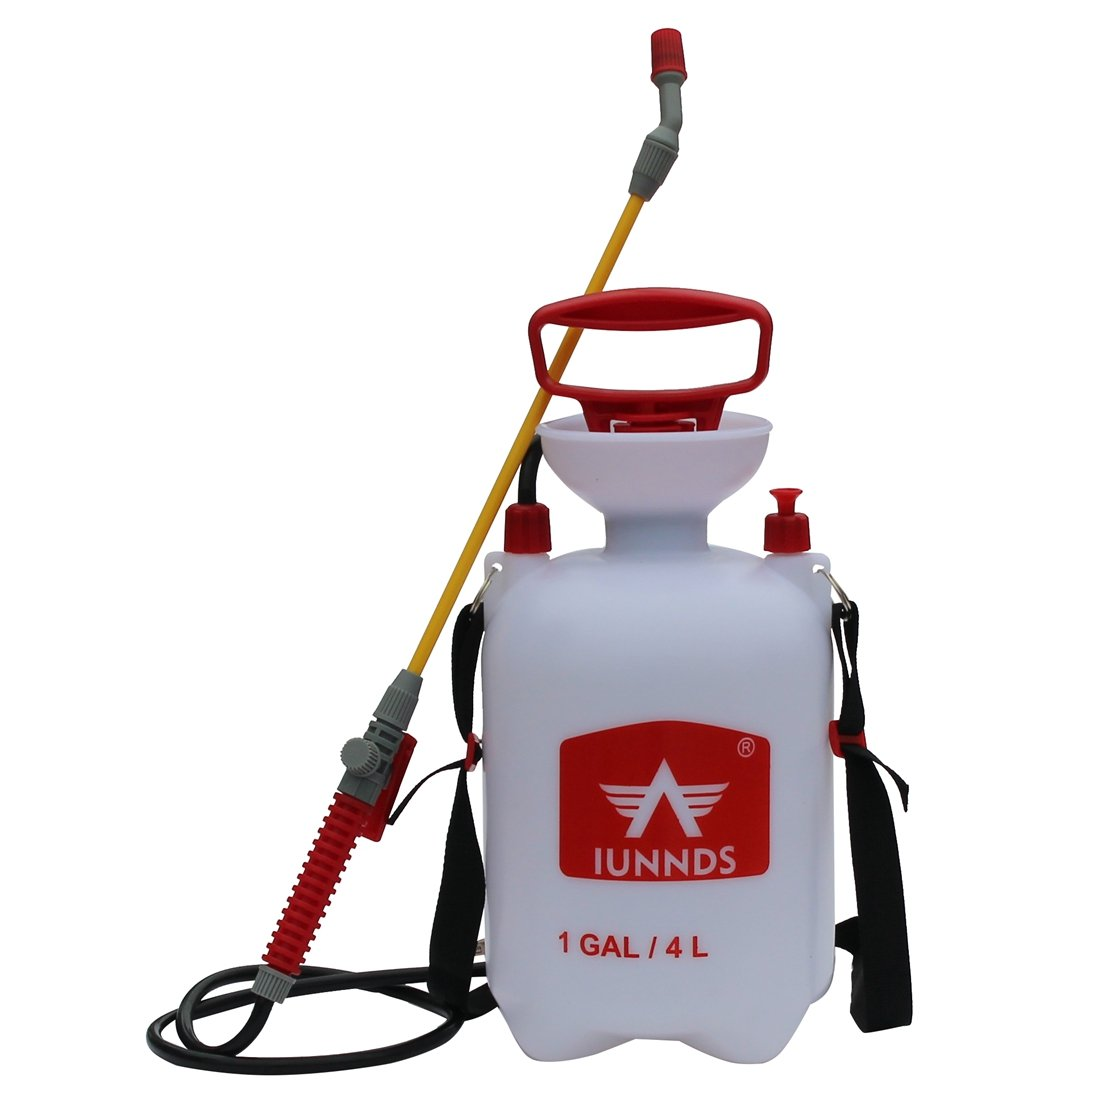 Sports God Lawn and Garden Pump Pressure Sprayer For Fertilizer, Herbicides, Pesticides, Mild Cleaning Solutions and Bleach